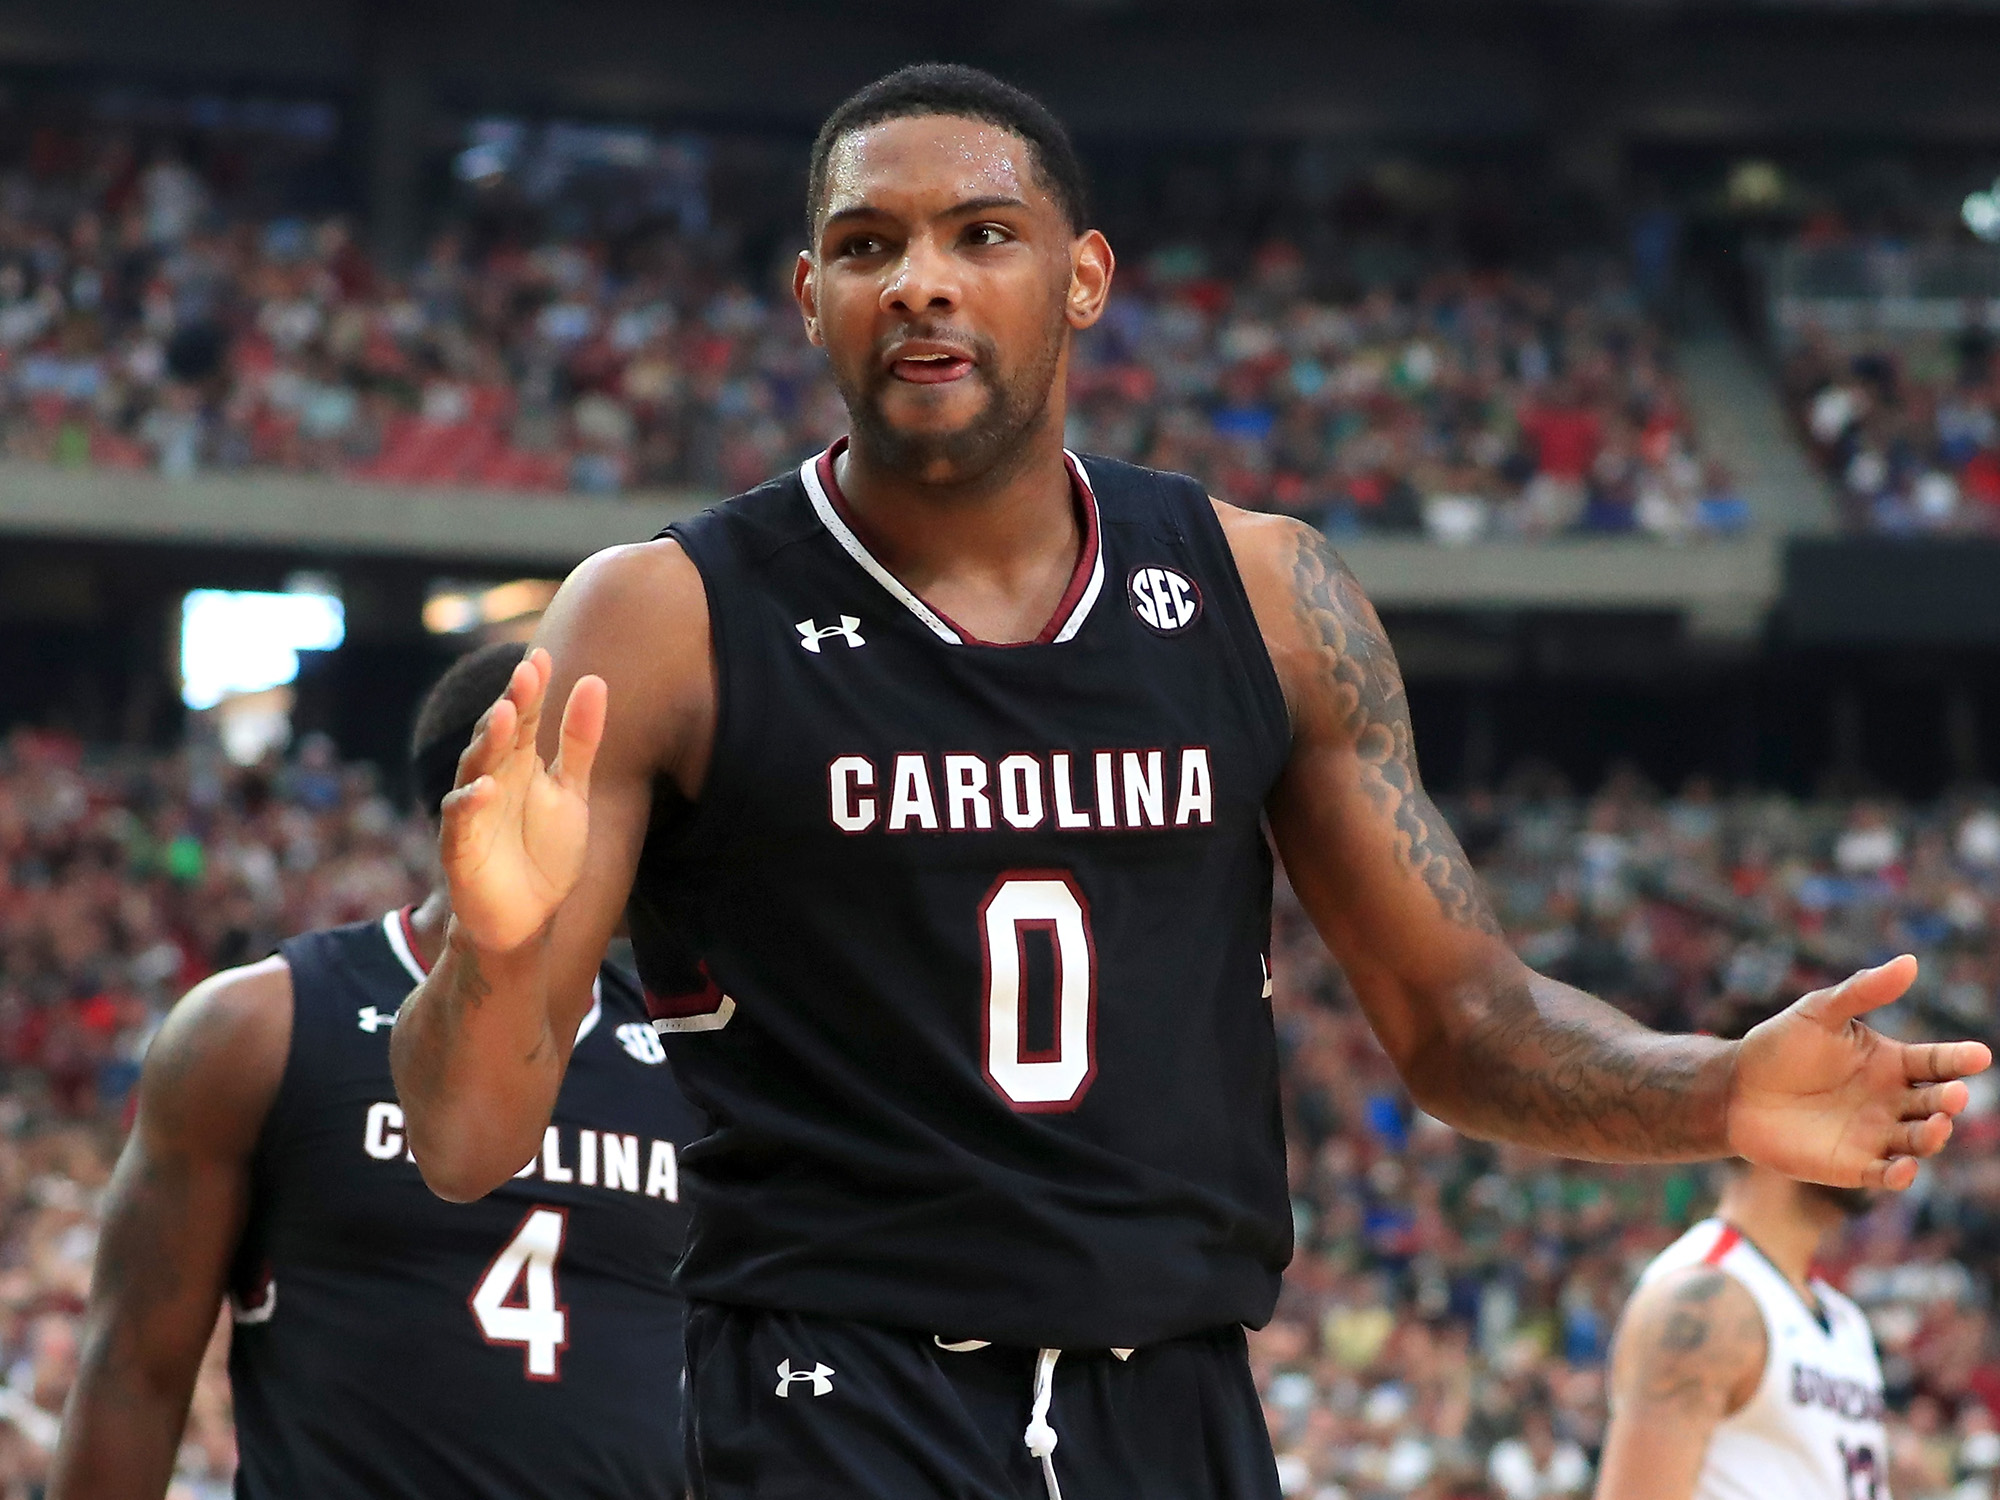 Trail Blazers Select Gonzaga's Collins at #10 Overall After Trade With Kings